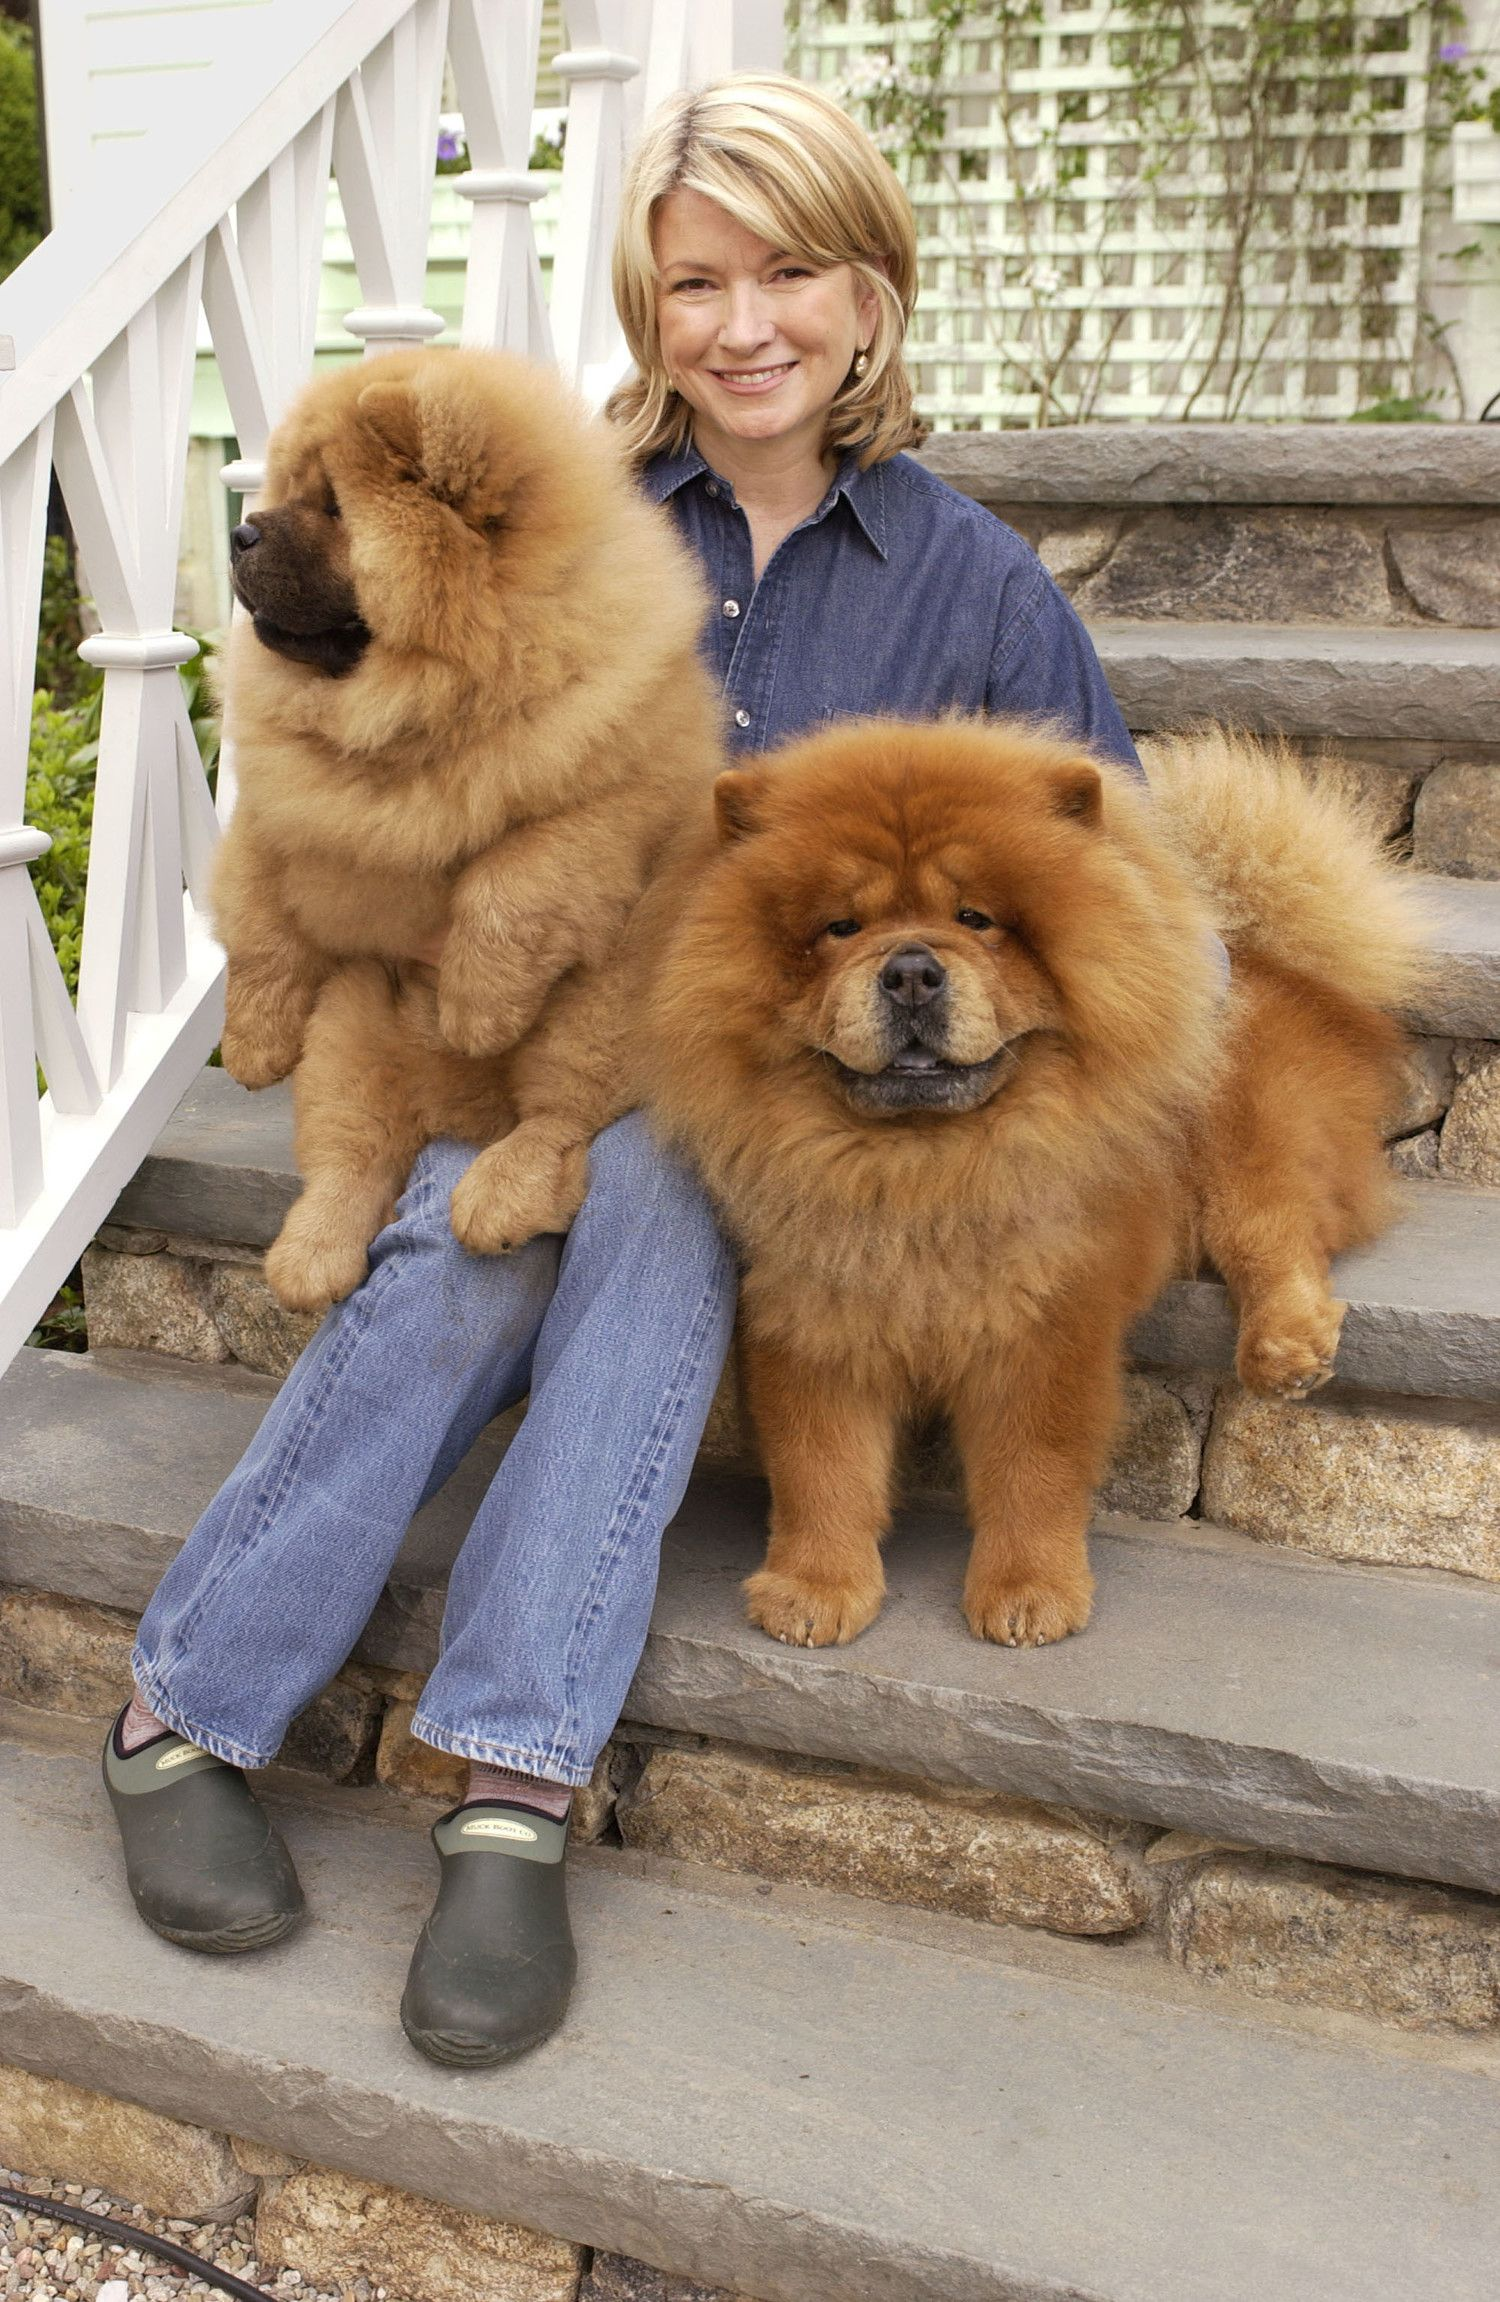 This Is Chin Chin And Paw Paw Together Chow Chows Are An Ancient